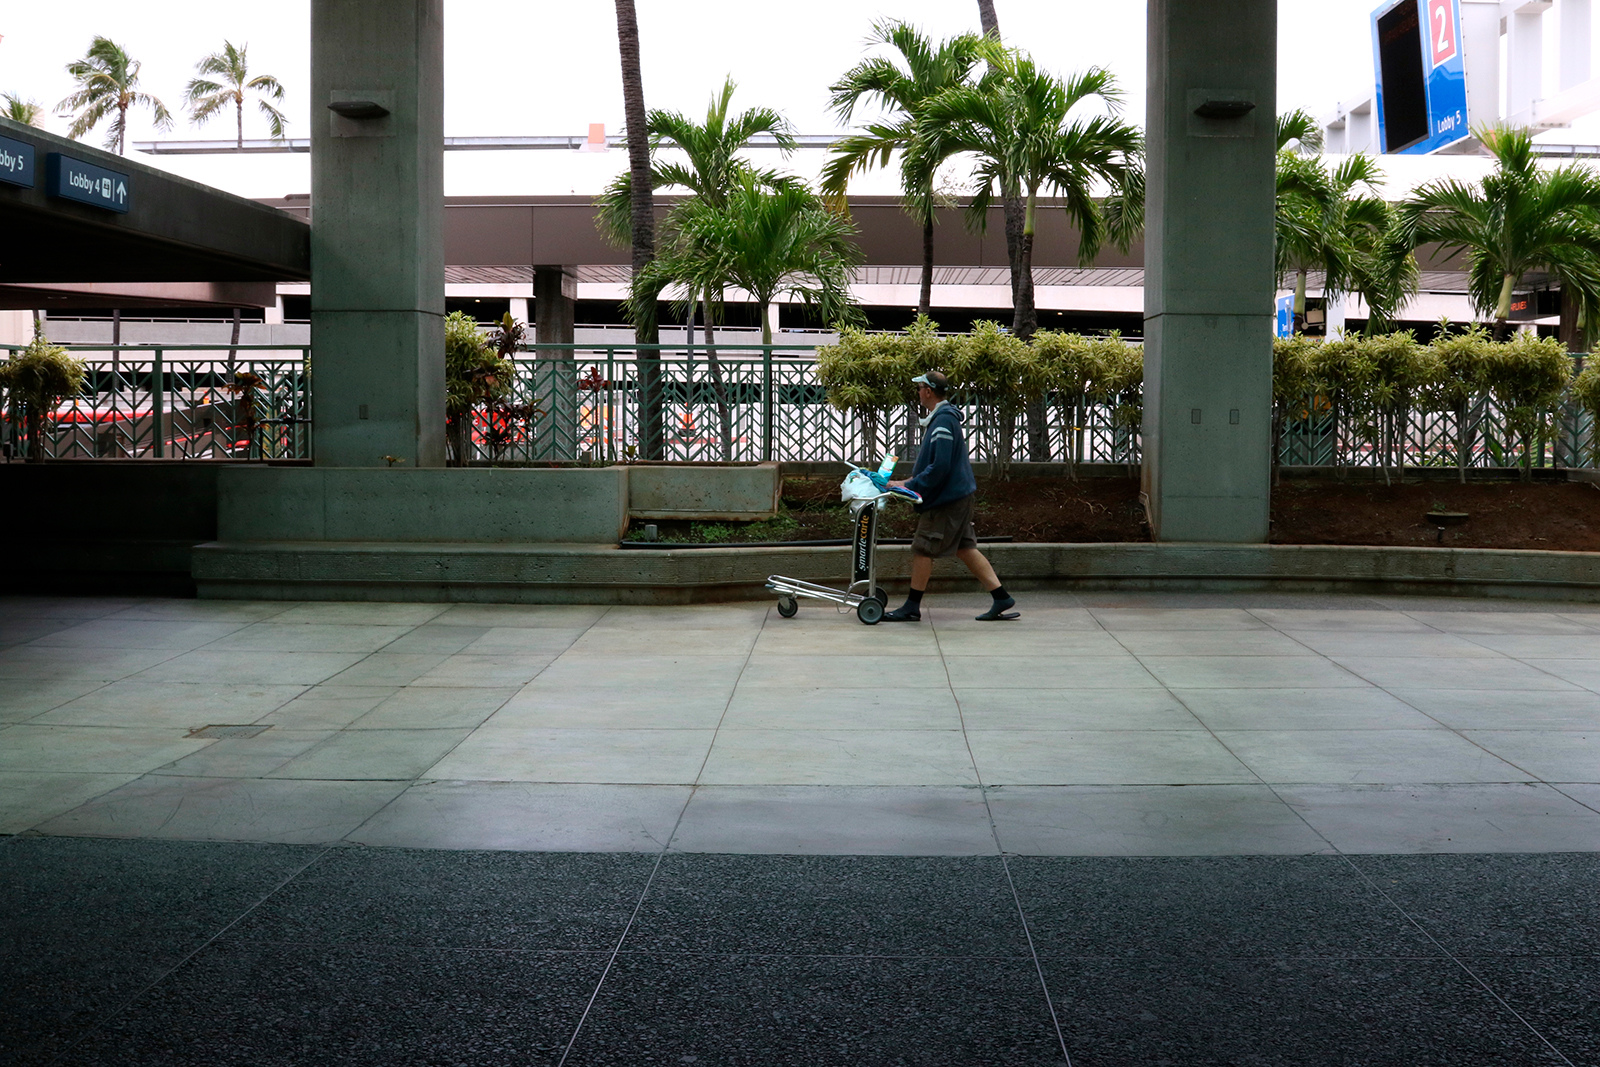 In this April 21 photo, a man pushes a cart at the international airport in Honolulu.